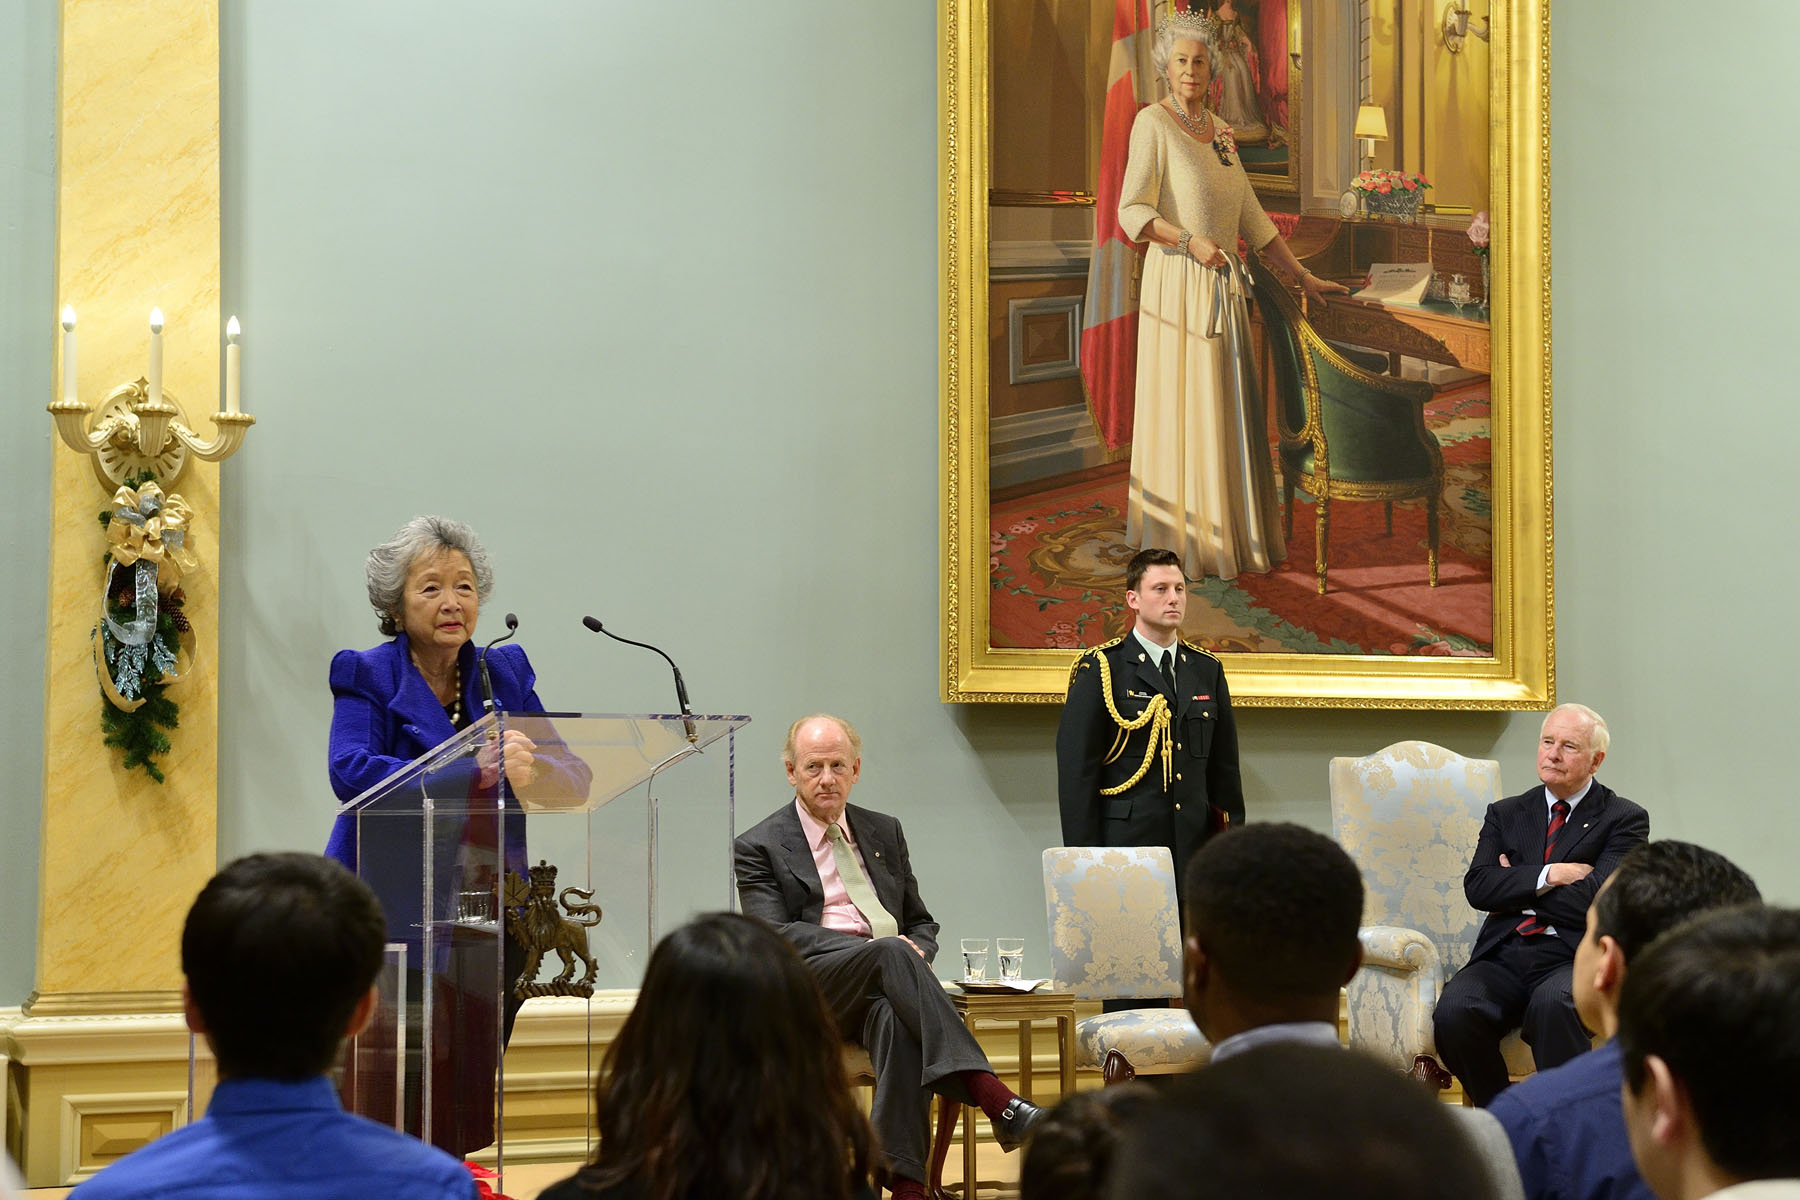 The Right Honourable Adrienne Clarkson, 26th Governor General of Canada delivered remarks.